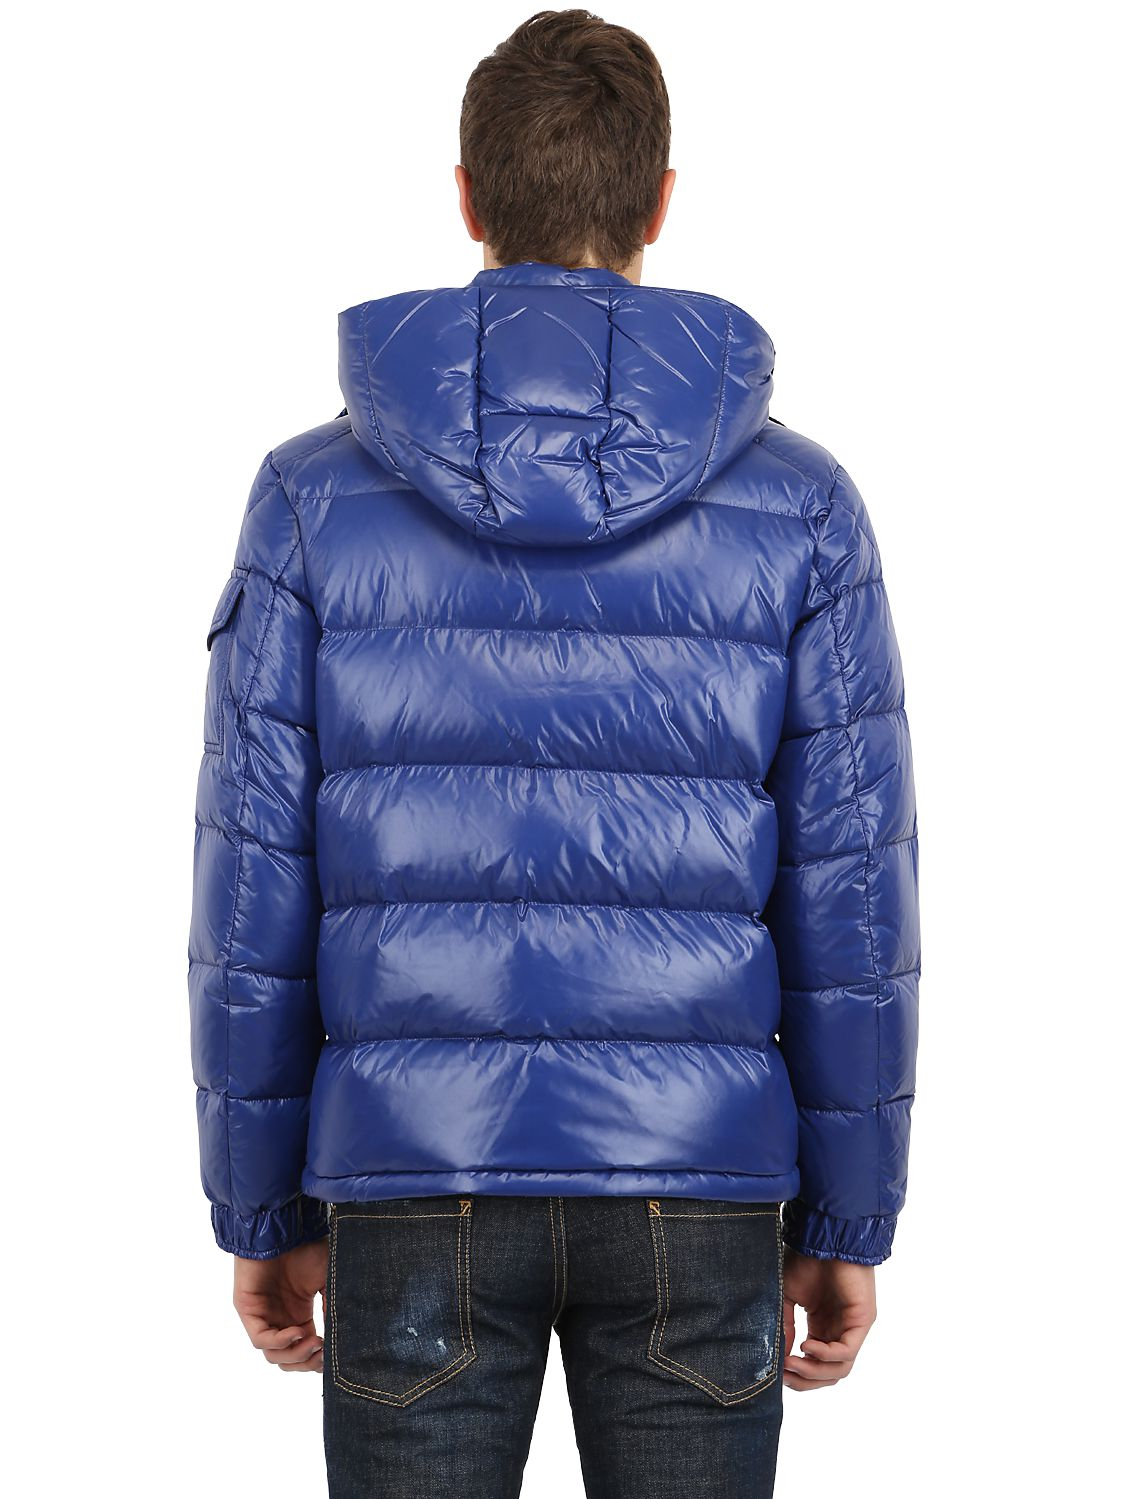 fefcf8a12 Moncler Maya Shiny Nylon Down Jacket in Blue for Men - Lyst